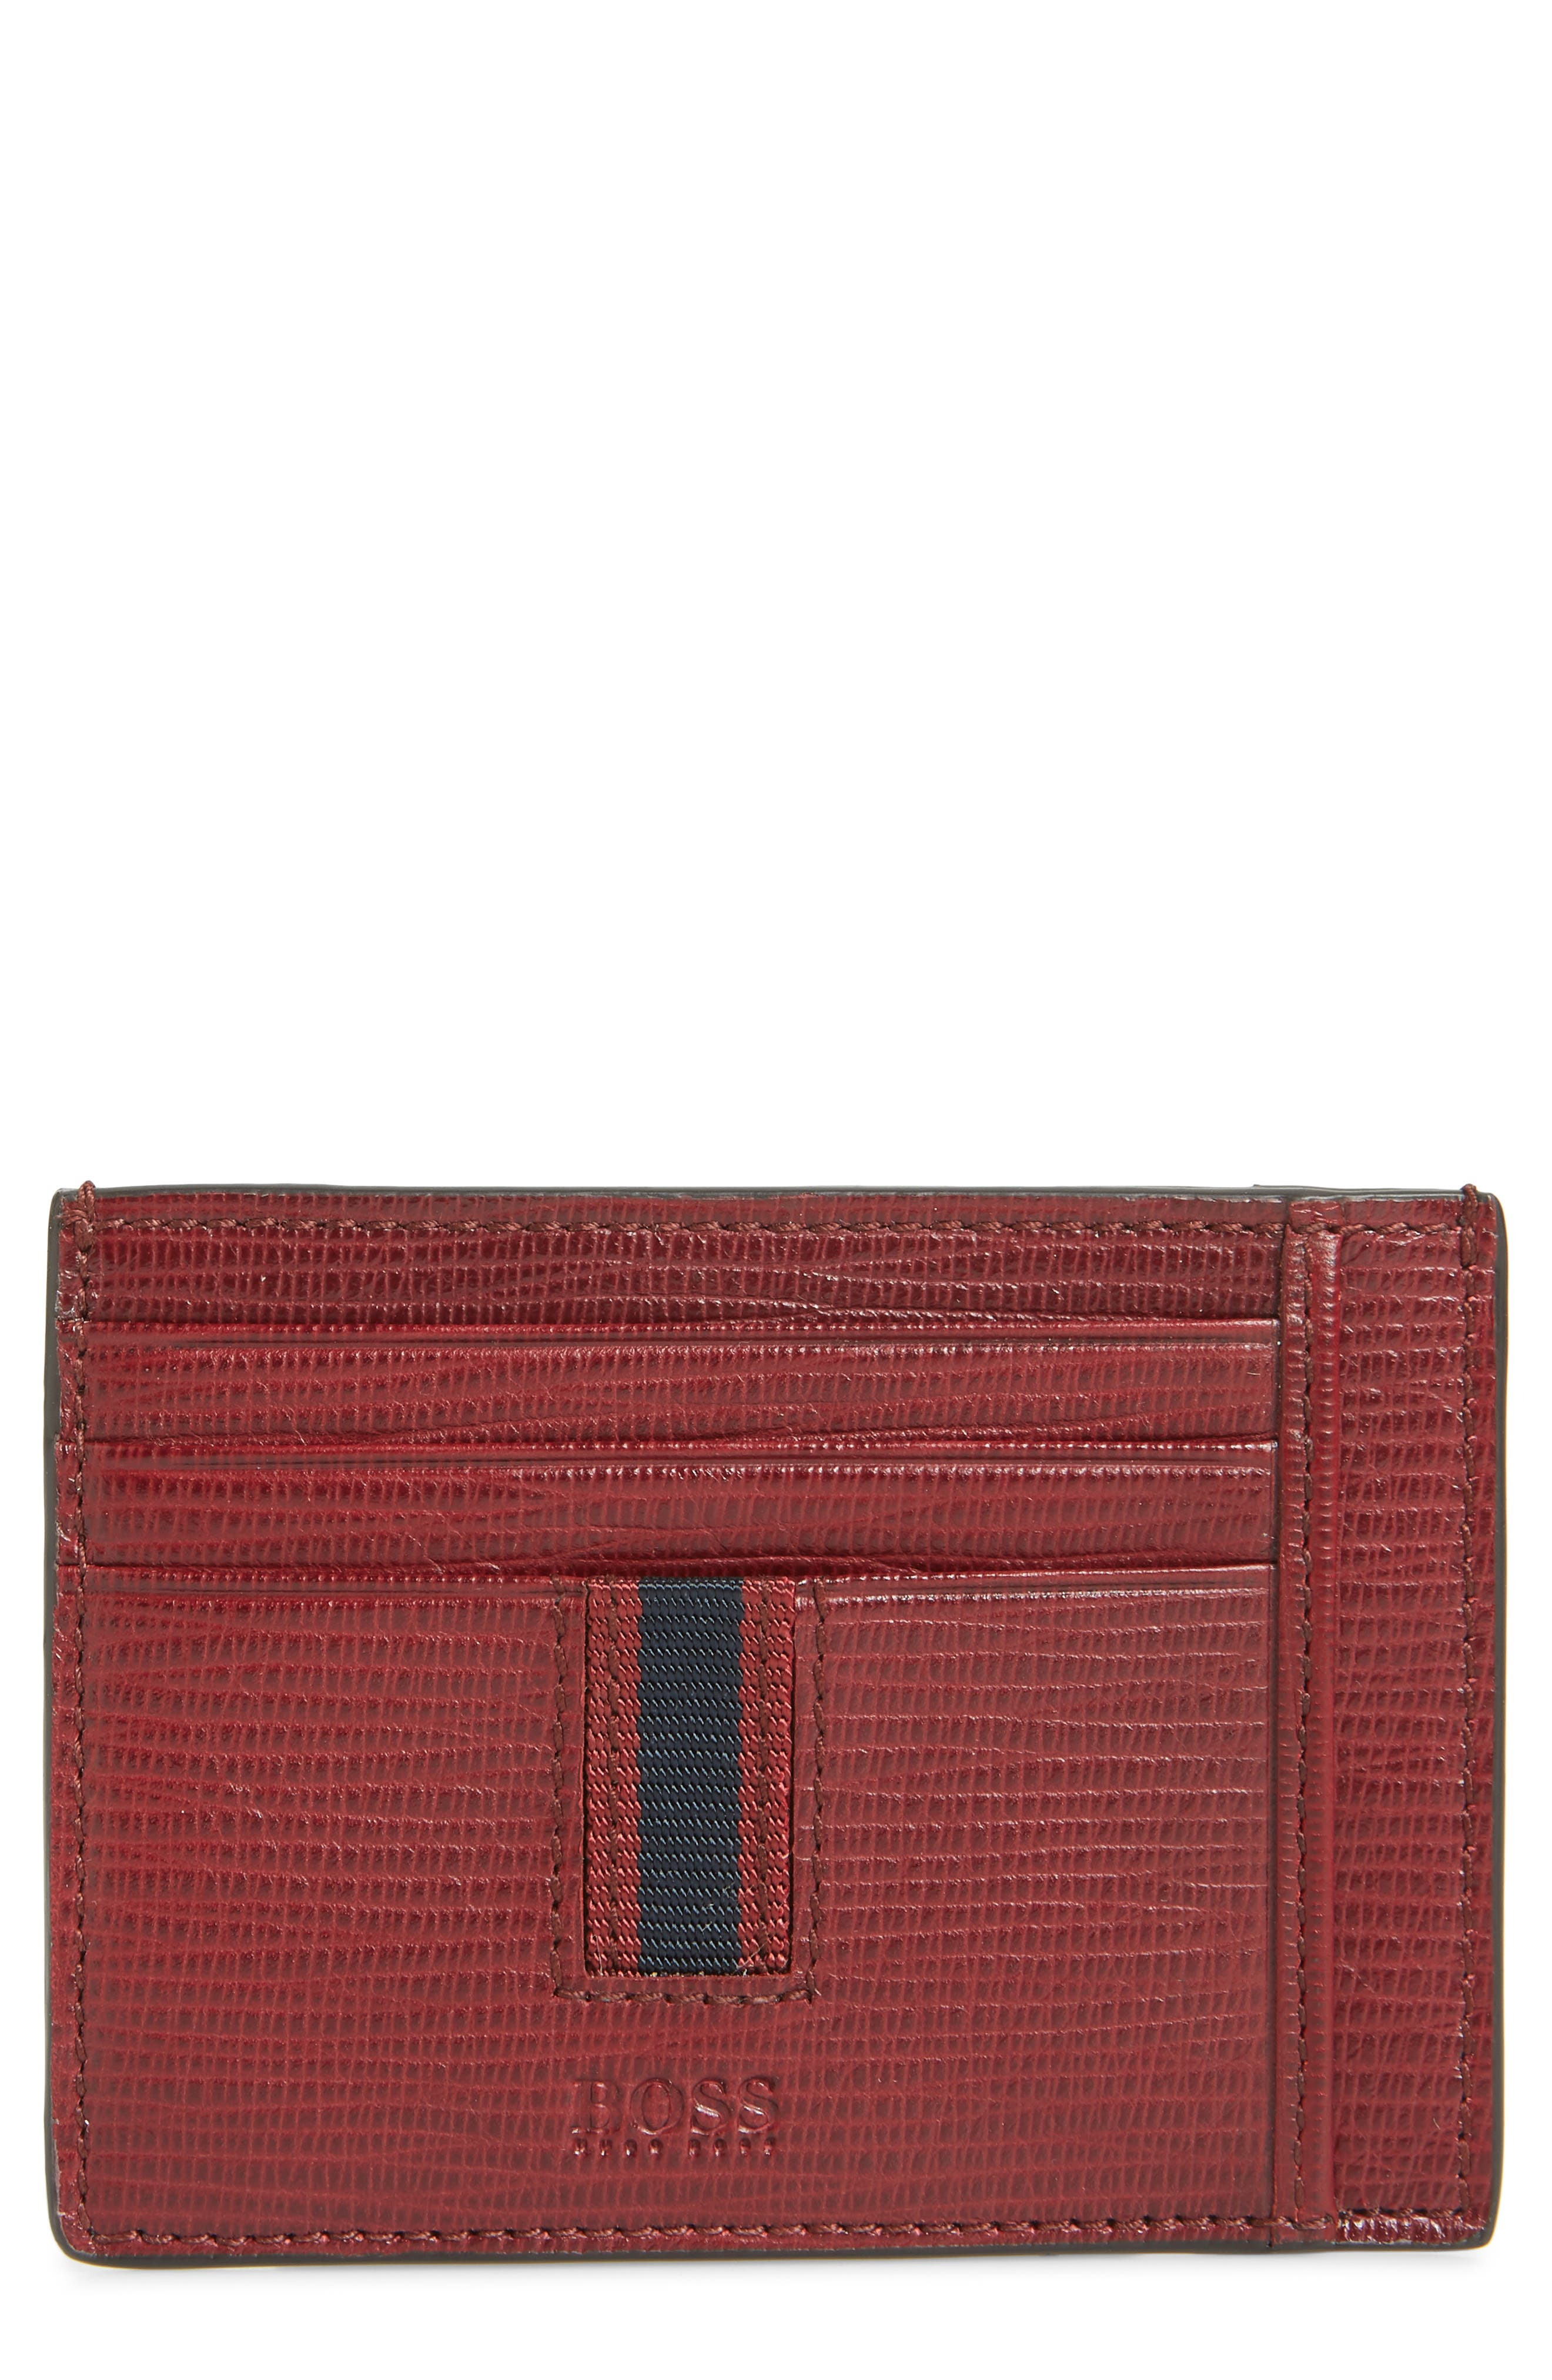 Leather Card Case,                         Main,                         color, DARK RED